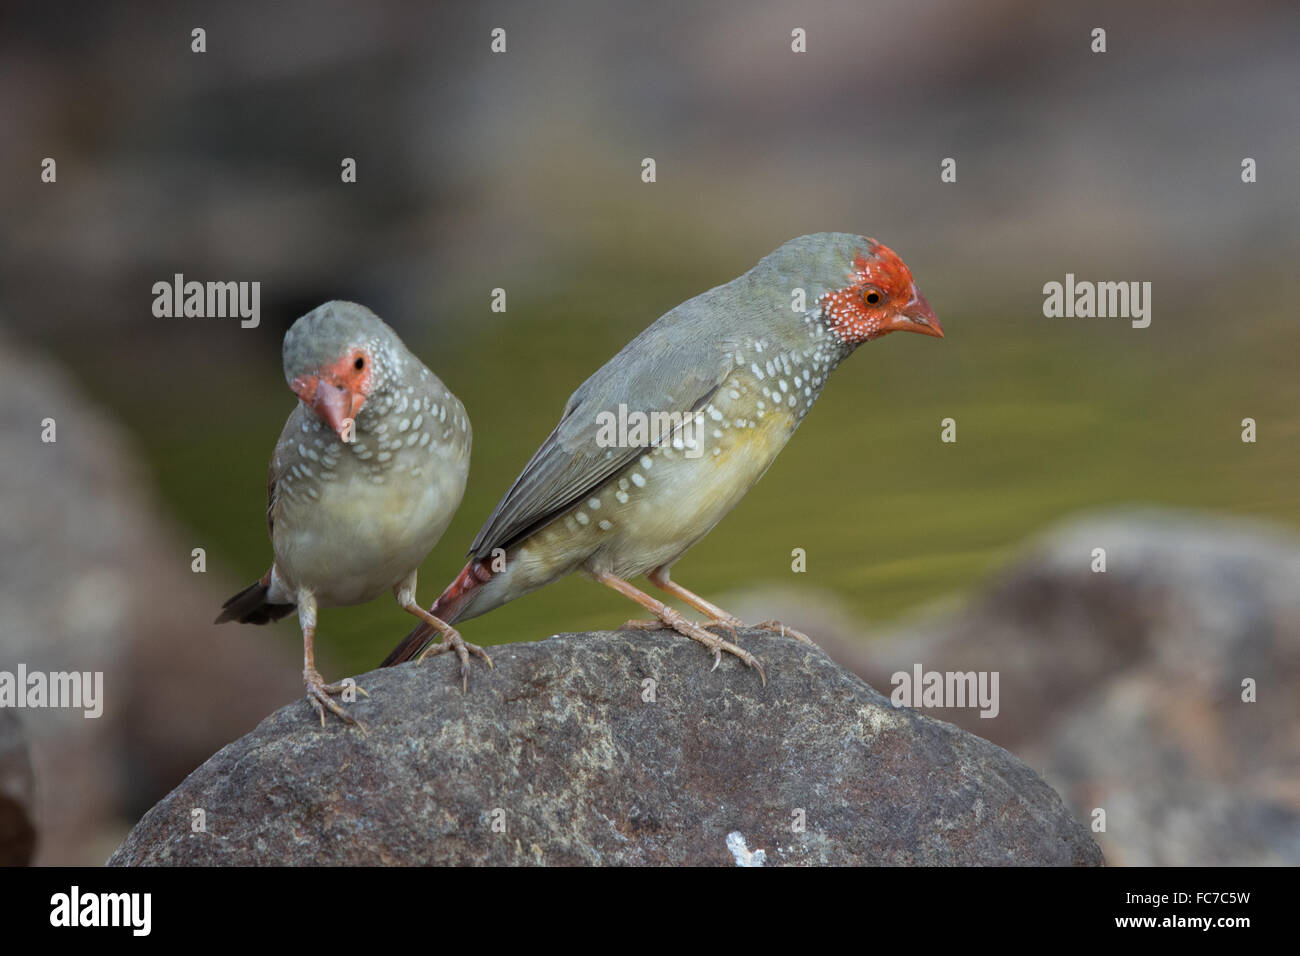 Star Finches (Neochmia ruficauda) perched on a rock - Stock Image